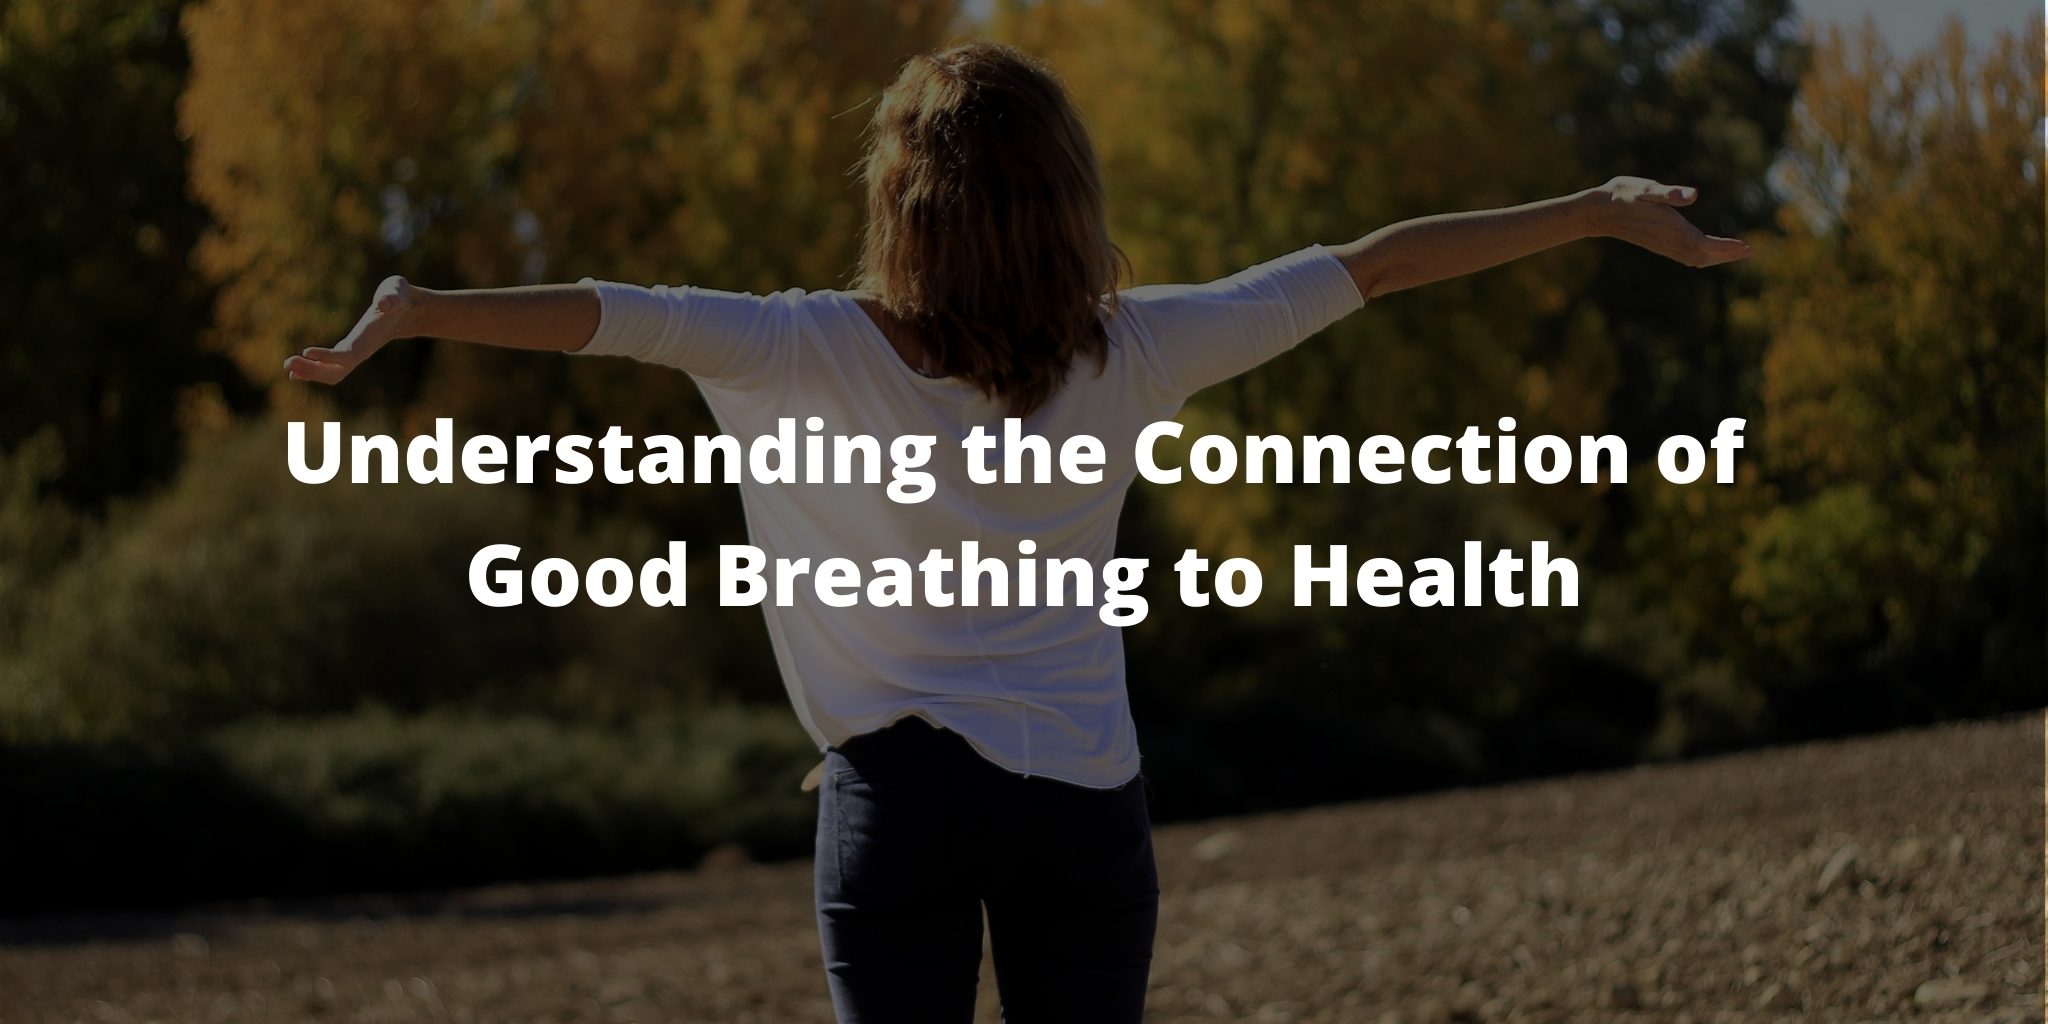 Understanding the Connection of Good Breathing to Health